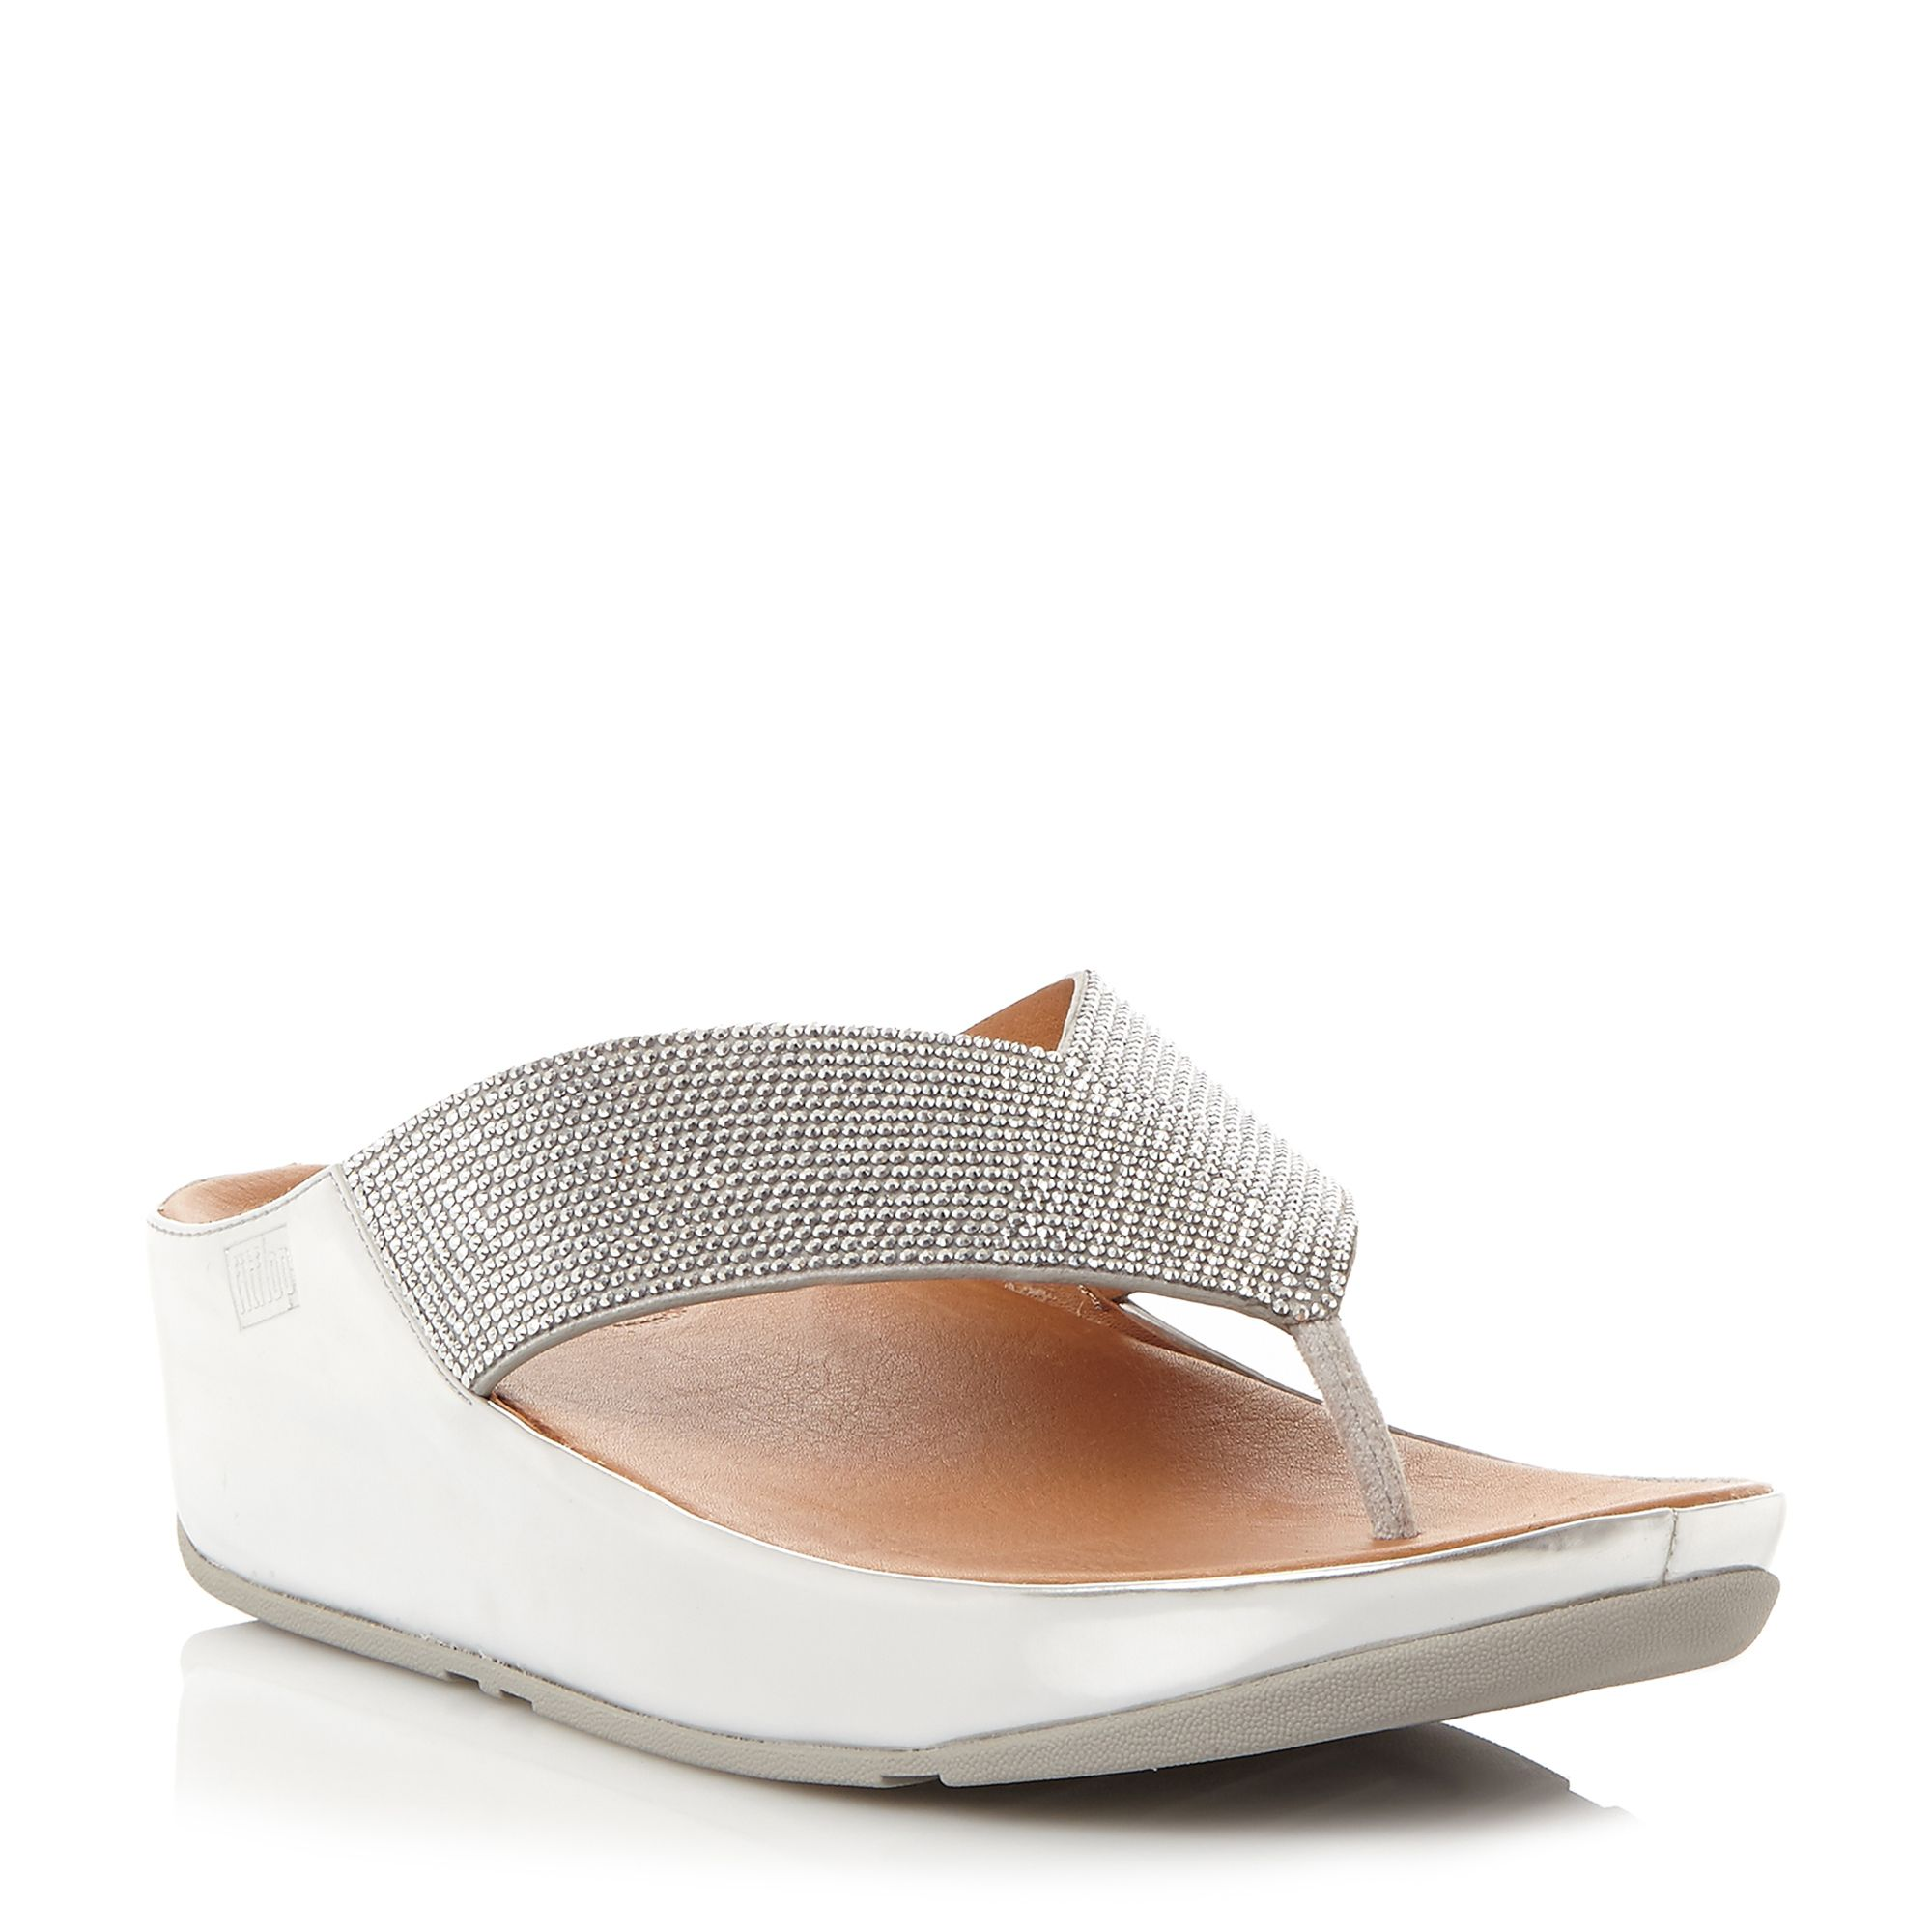 FitFlop Crystall Toepost Sandals, Silver